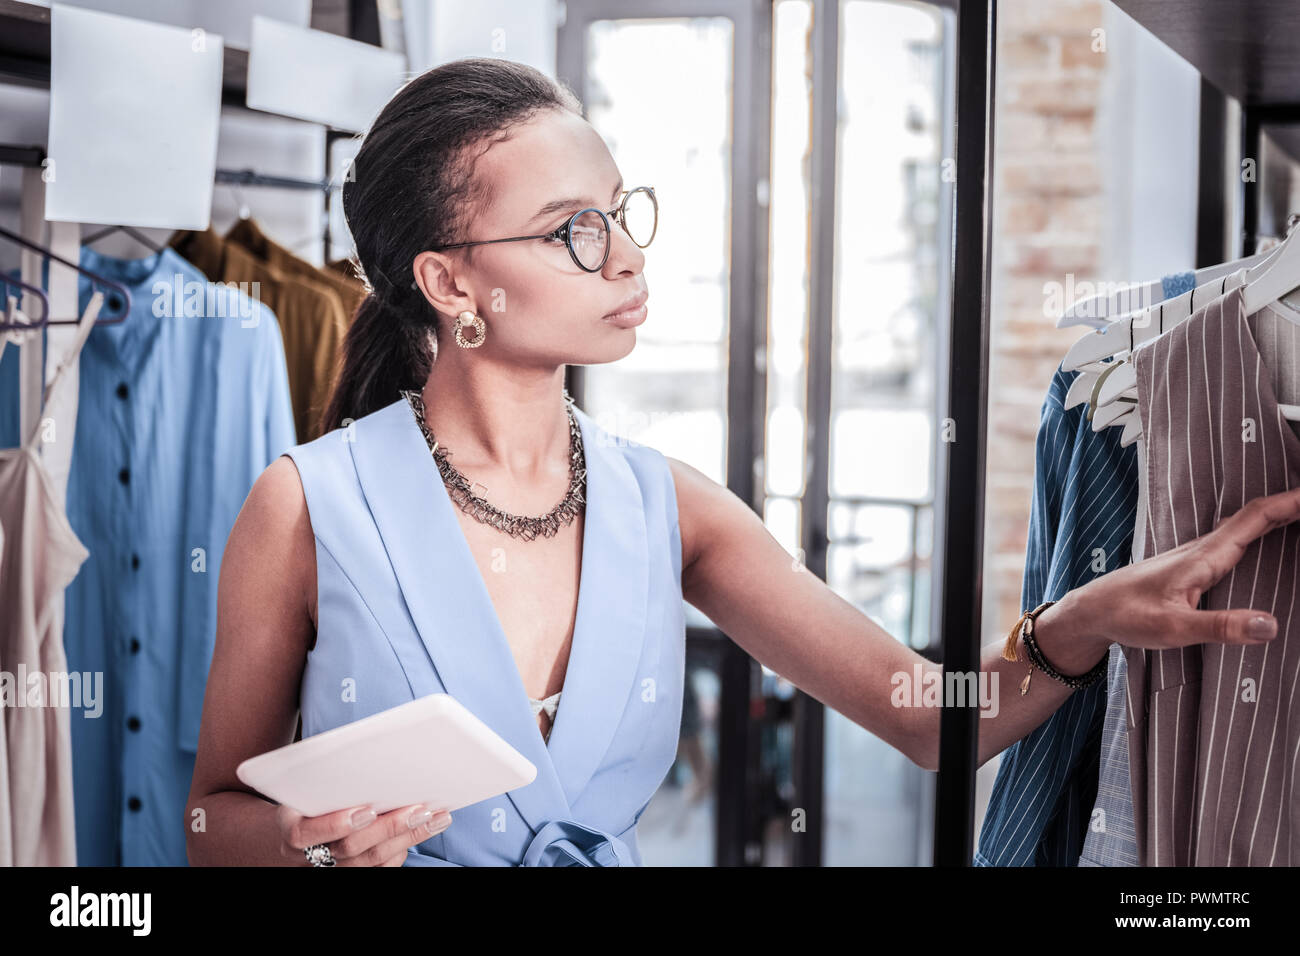 Owner of boutique holding tablet while filling information about size range - Stock Image